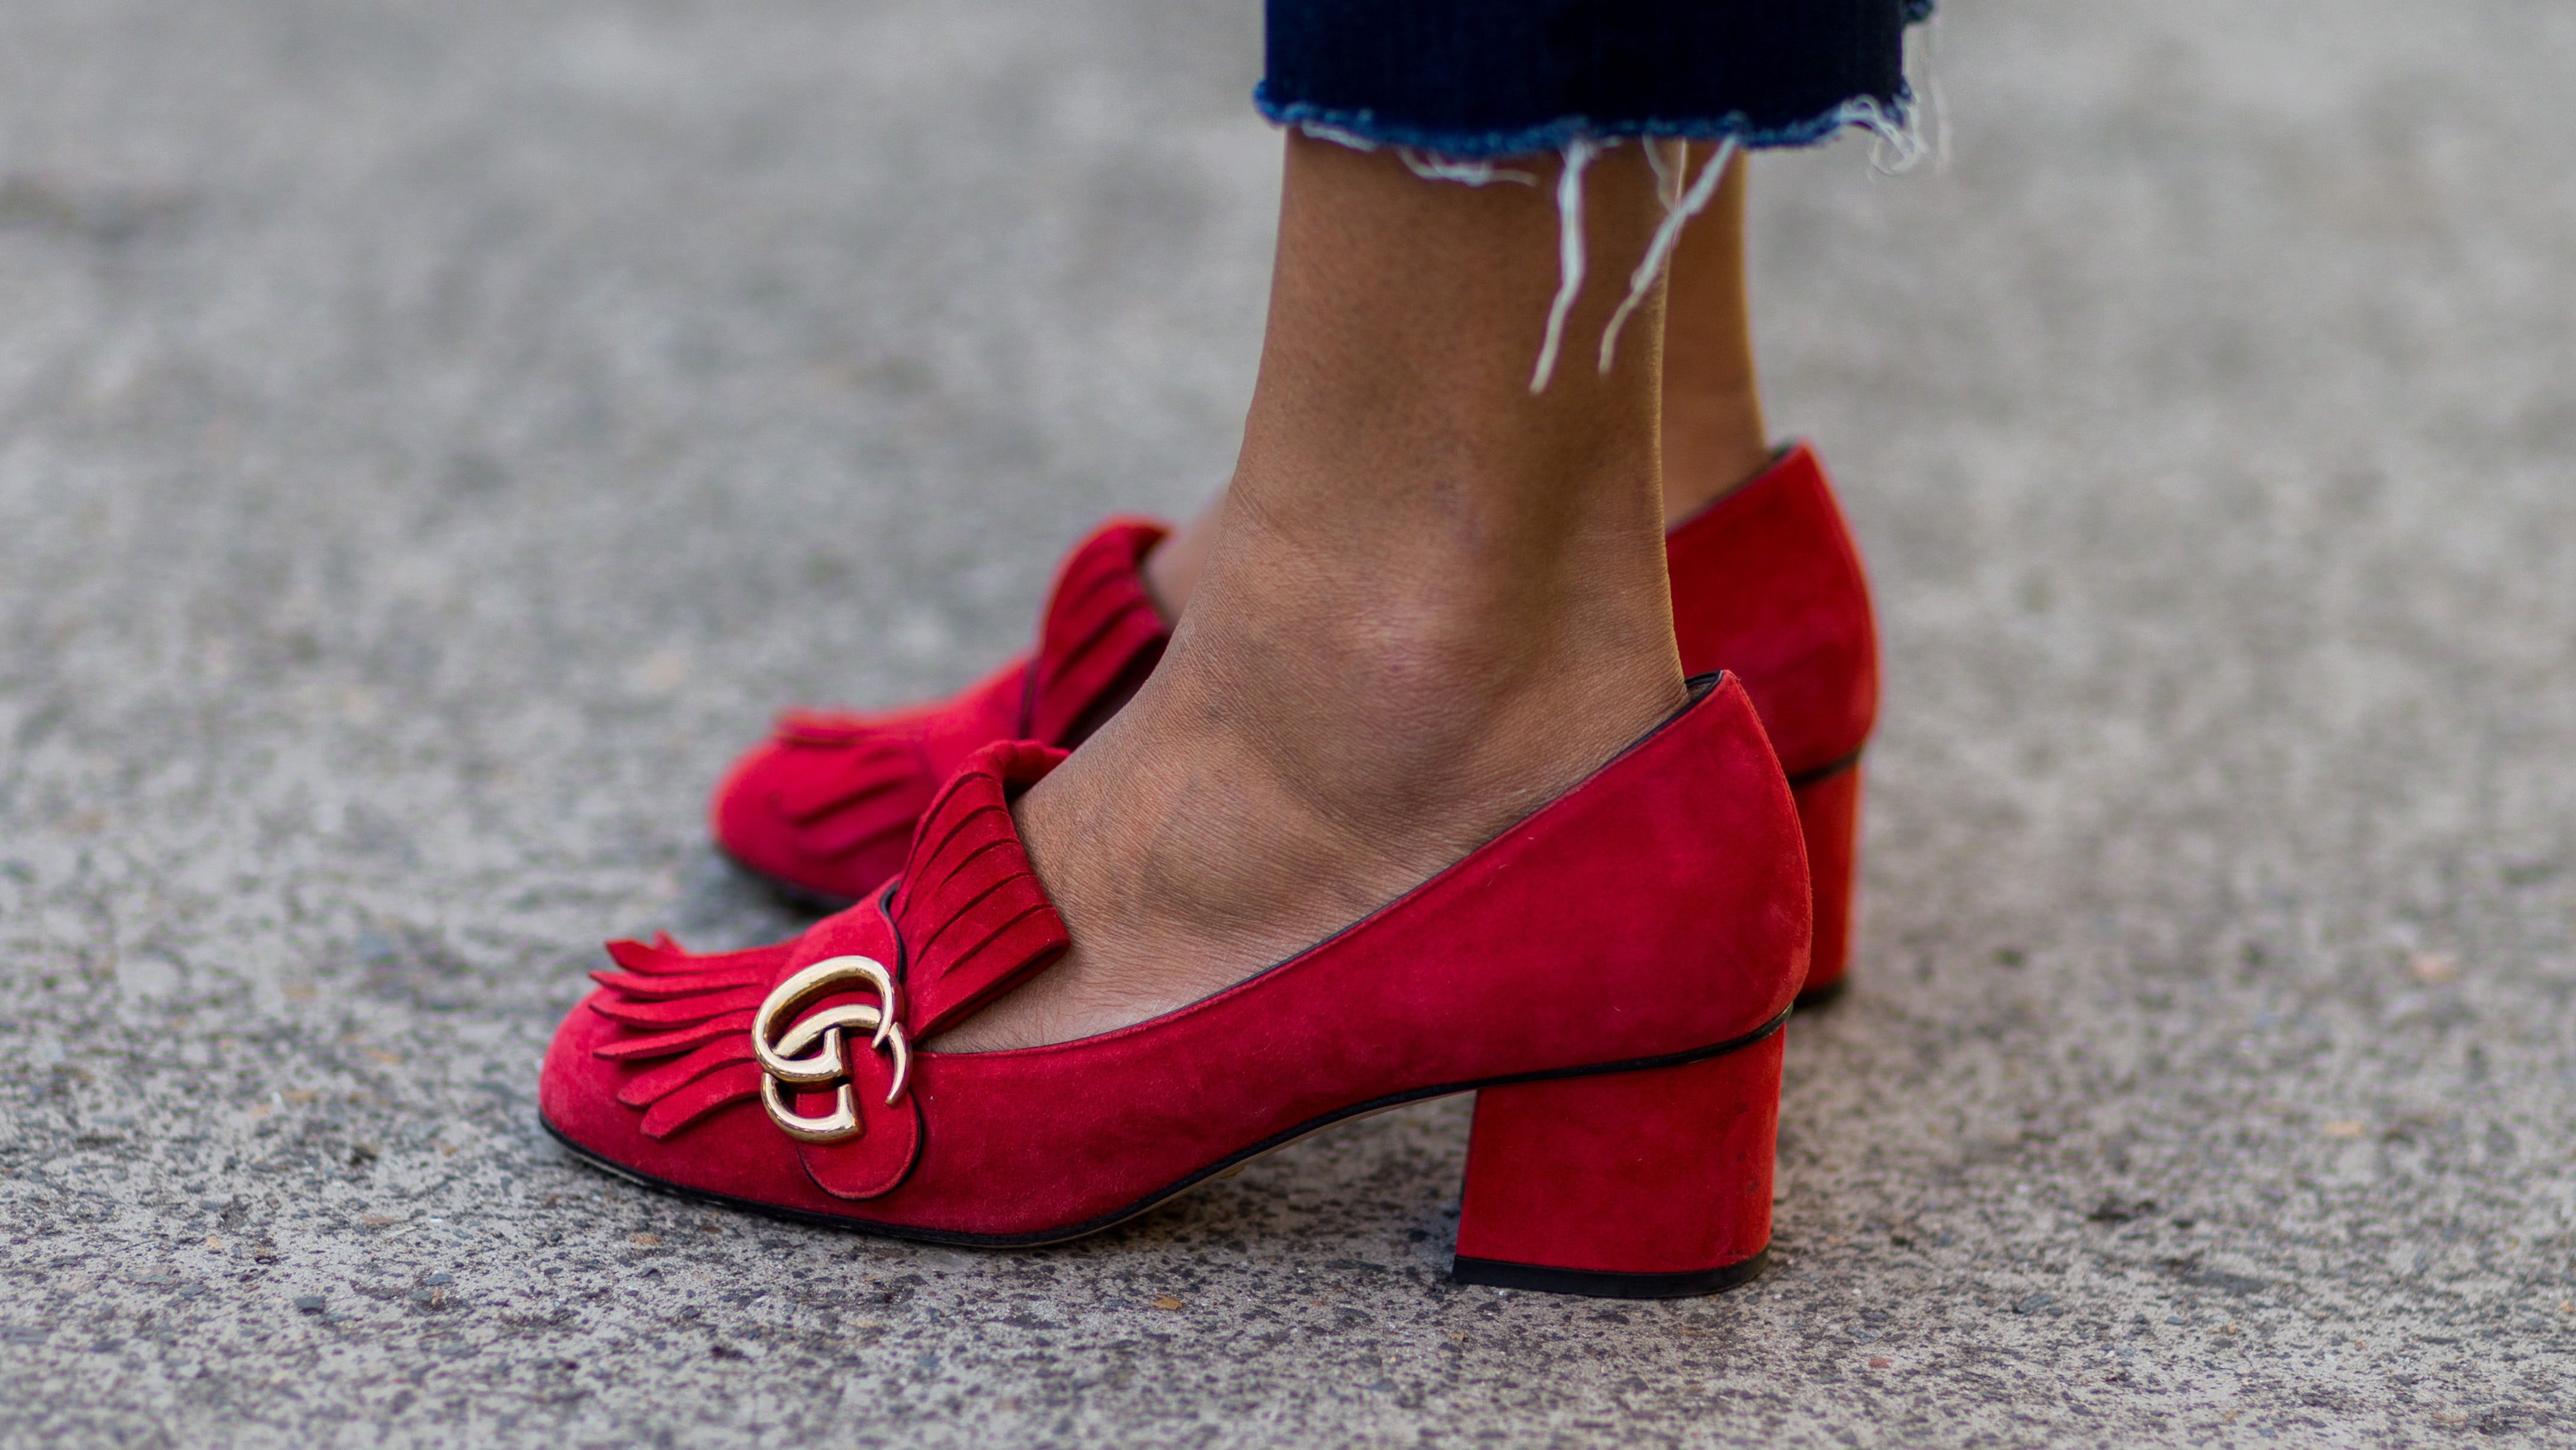 Op-Ed | Our Lust for Gucci Loafers Can't Last Forever